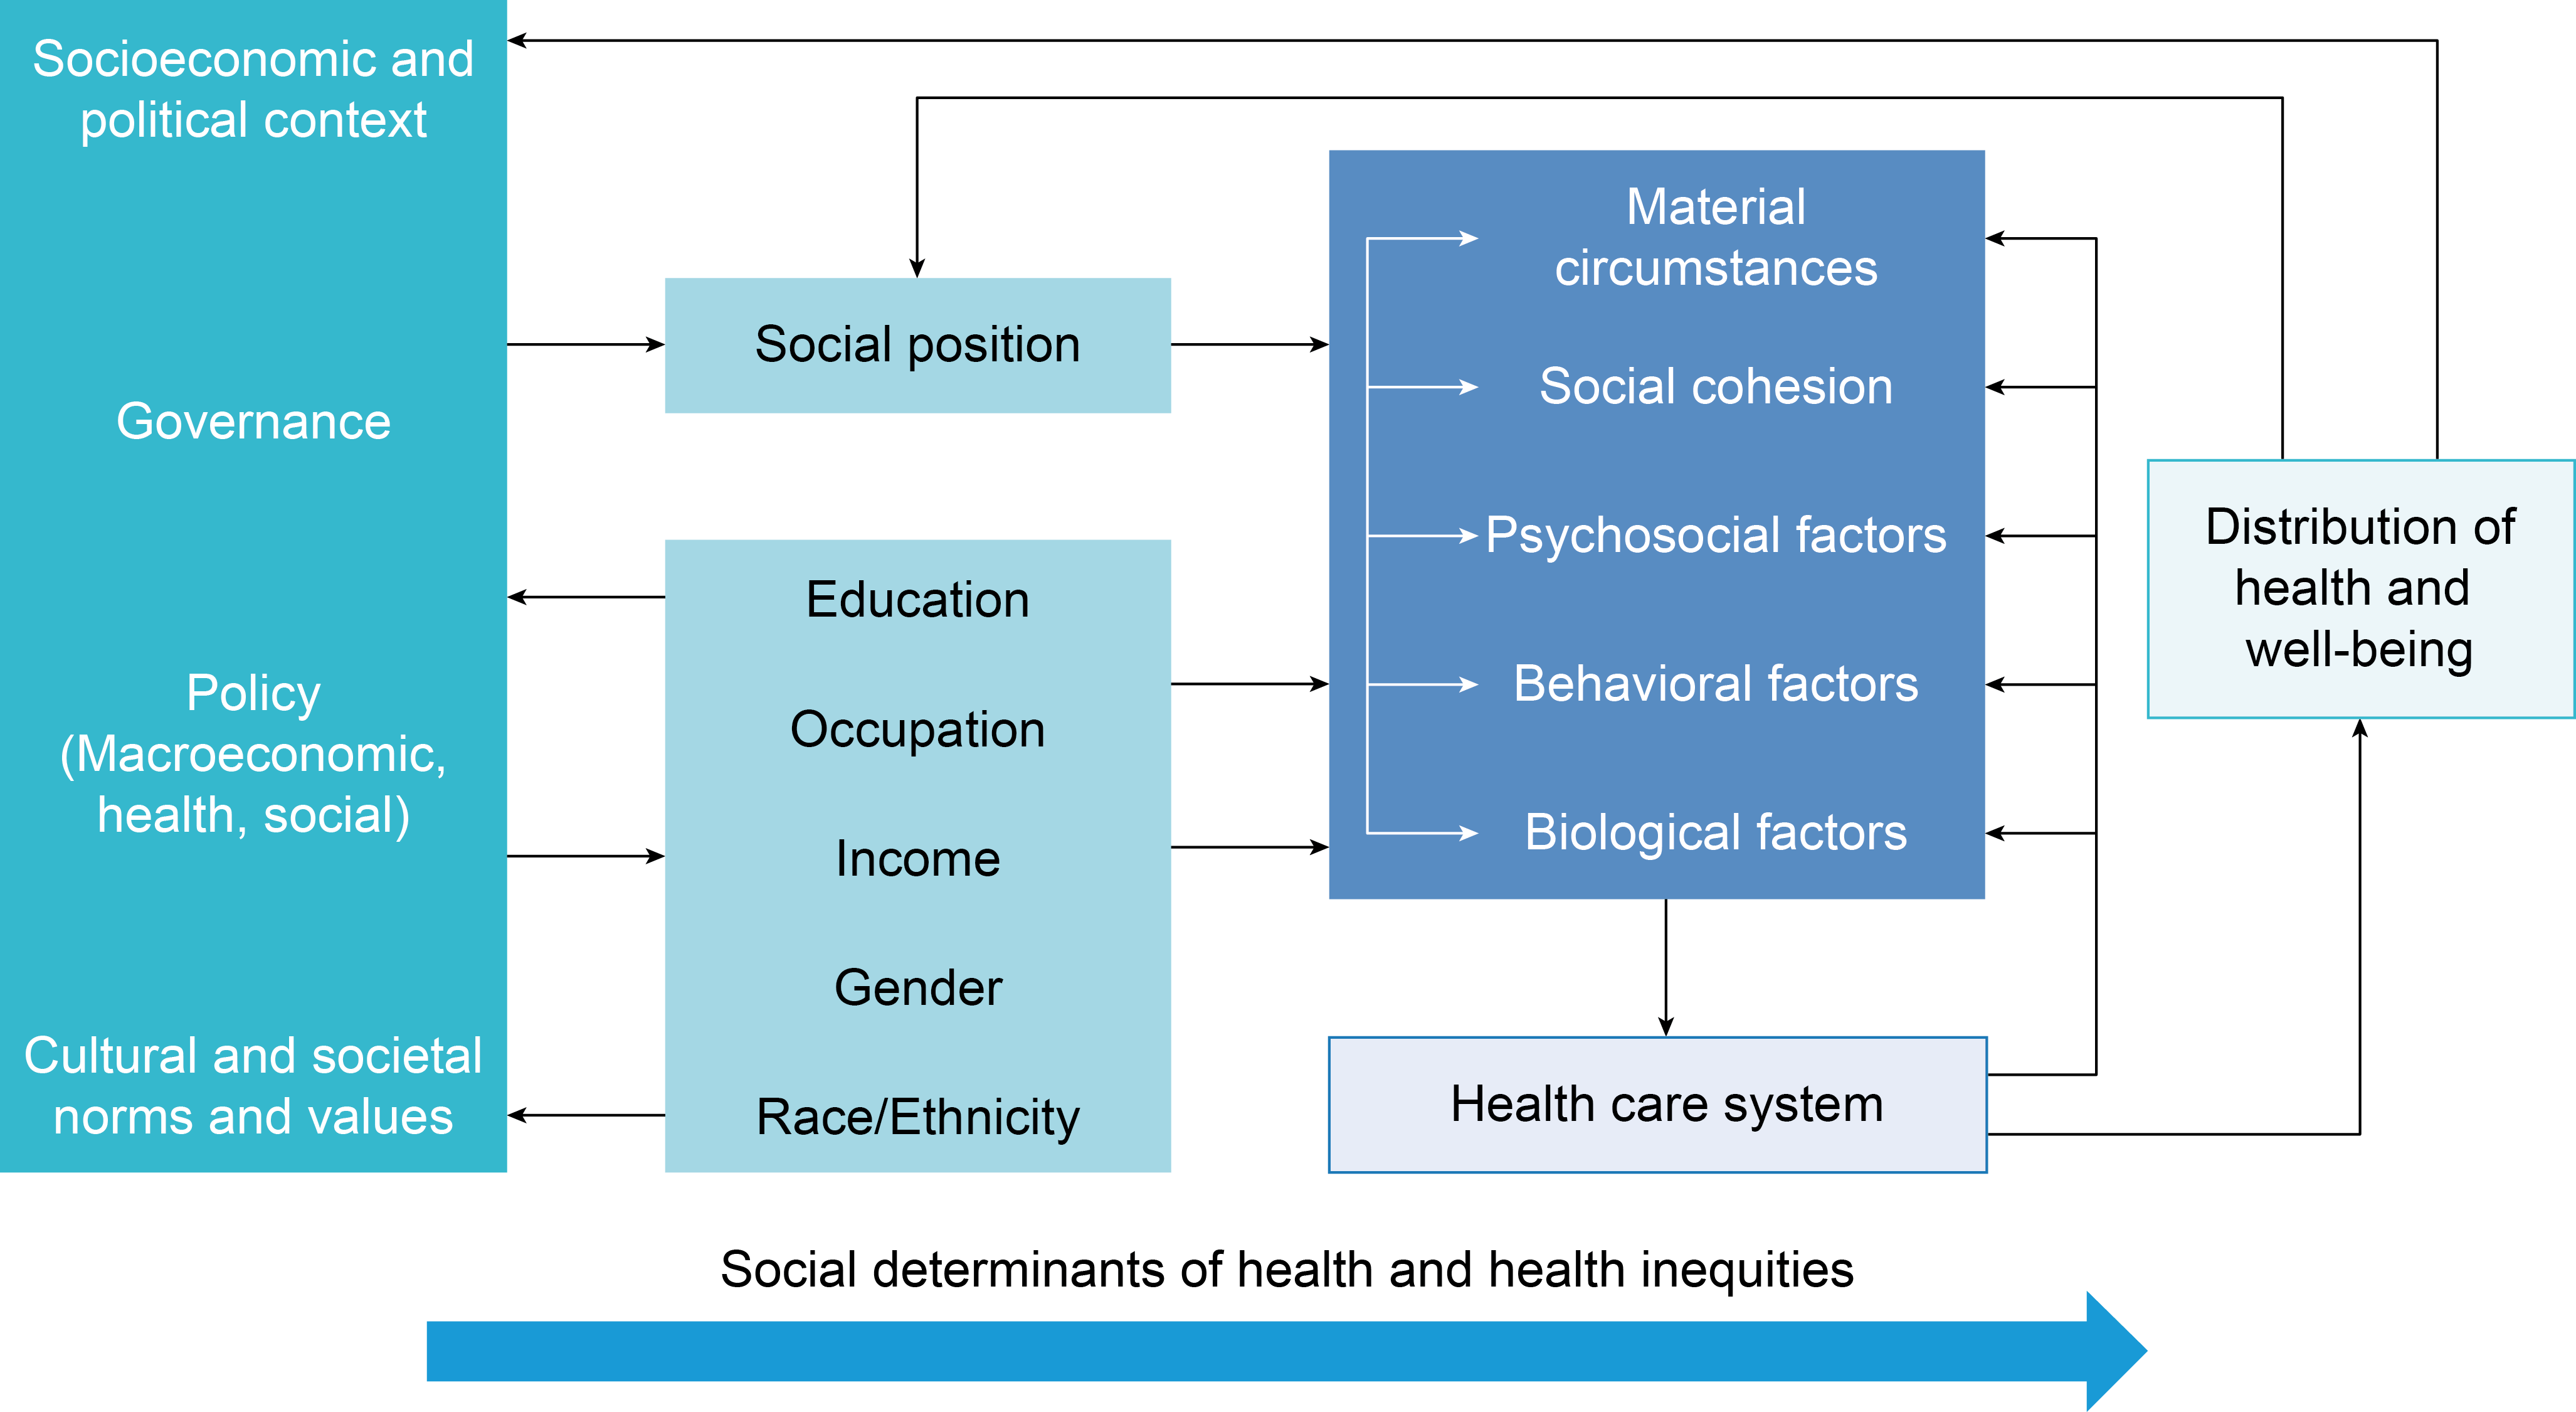 Source: Solar O, Irwin A. A conceptual framework for action on the social  determinants of health. Geneva: World Health Organization; 2007. (